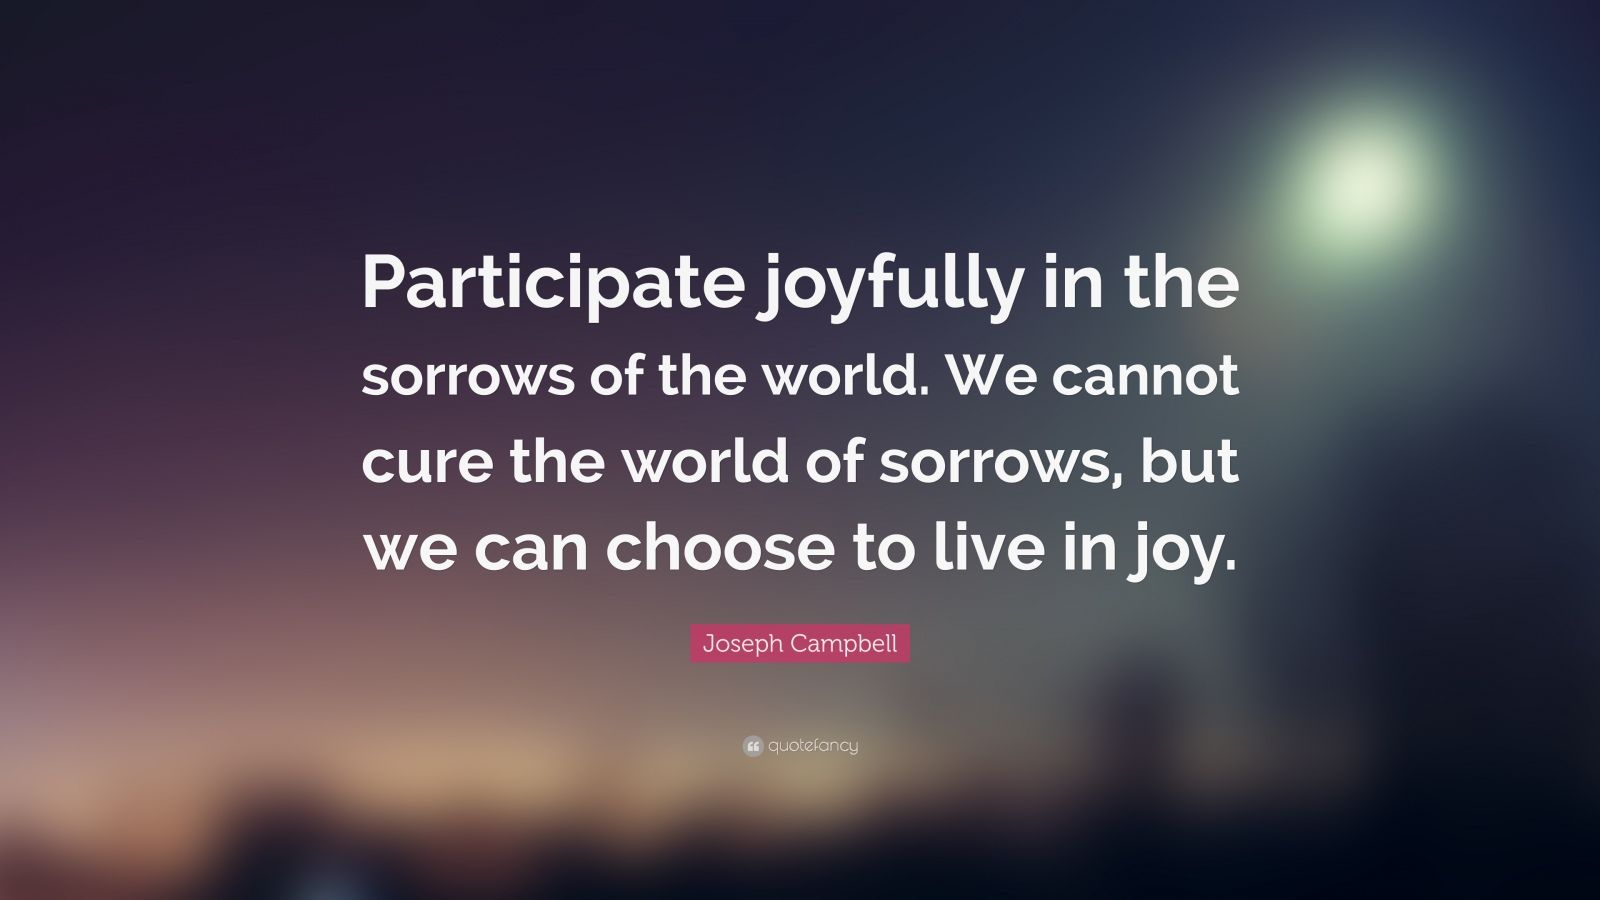 """Joseph Campbell Quote: """"Participate joyfully in the sorrows of the world. We cannot cure the world of sorrows, but we can choose to live in joy."""""""